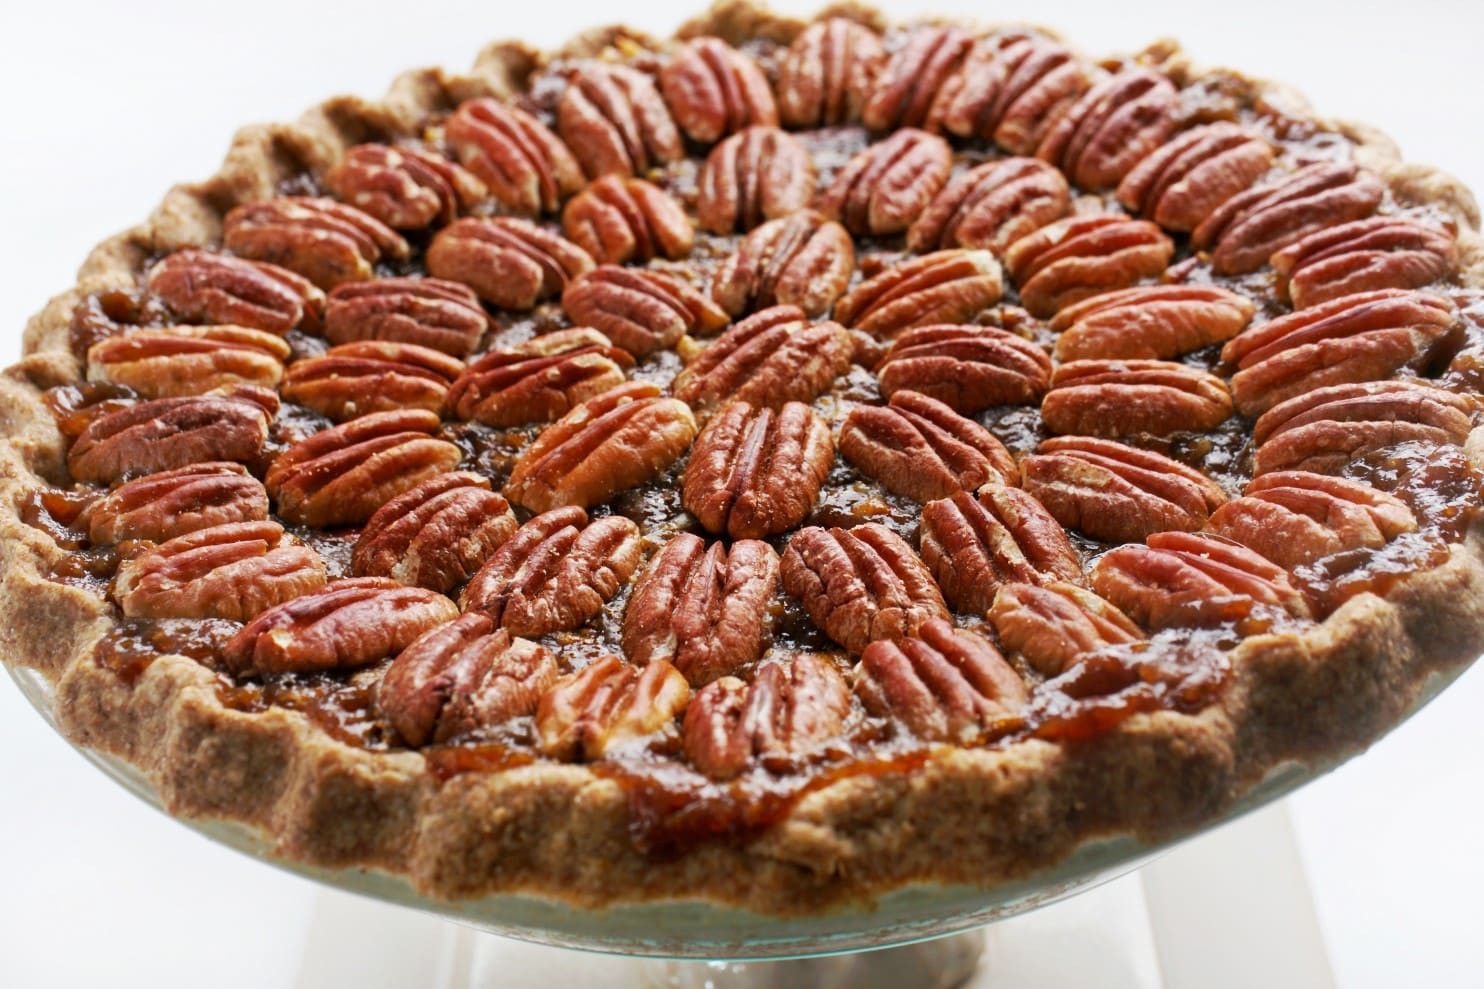 M&Ms Pecan Pie  The vegan holiday pie with a double dose of pecans and a